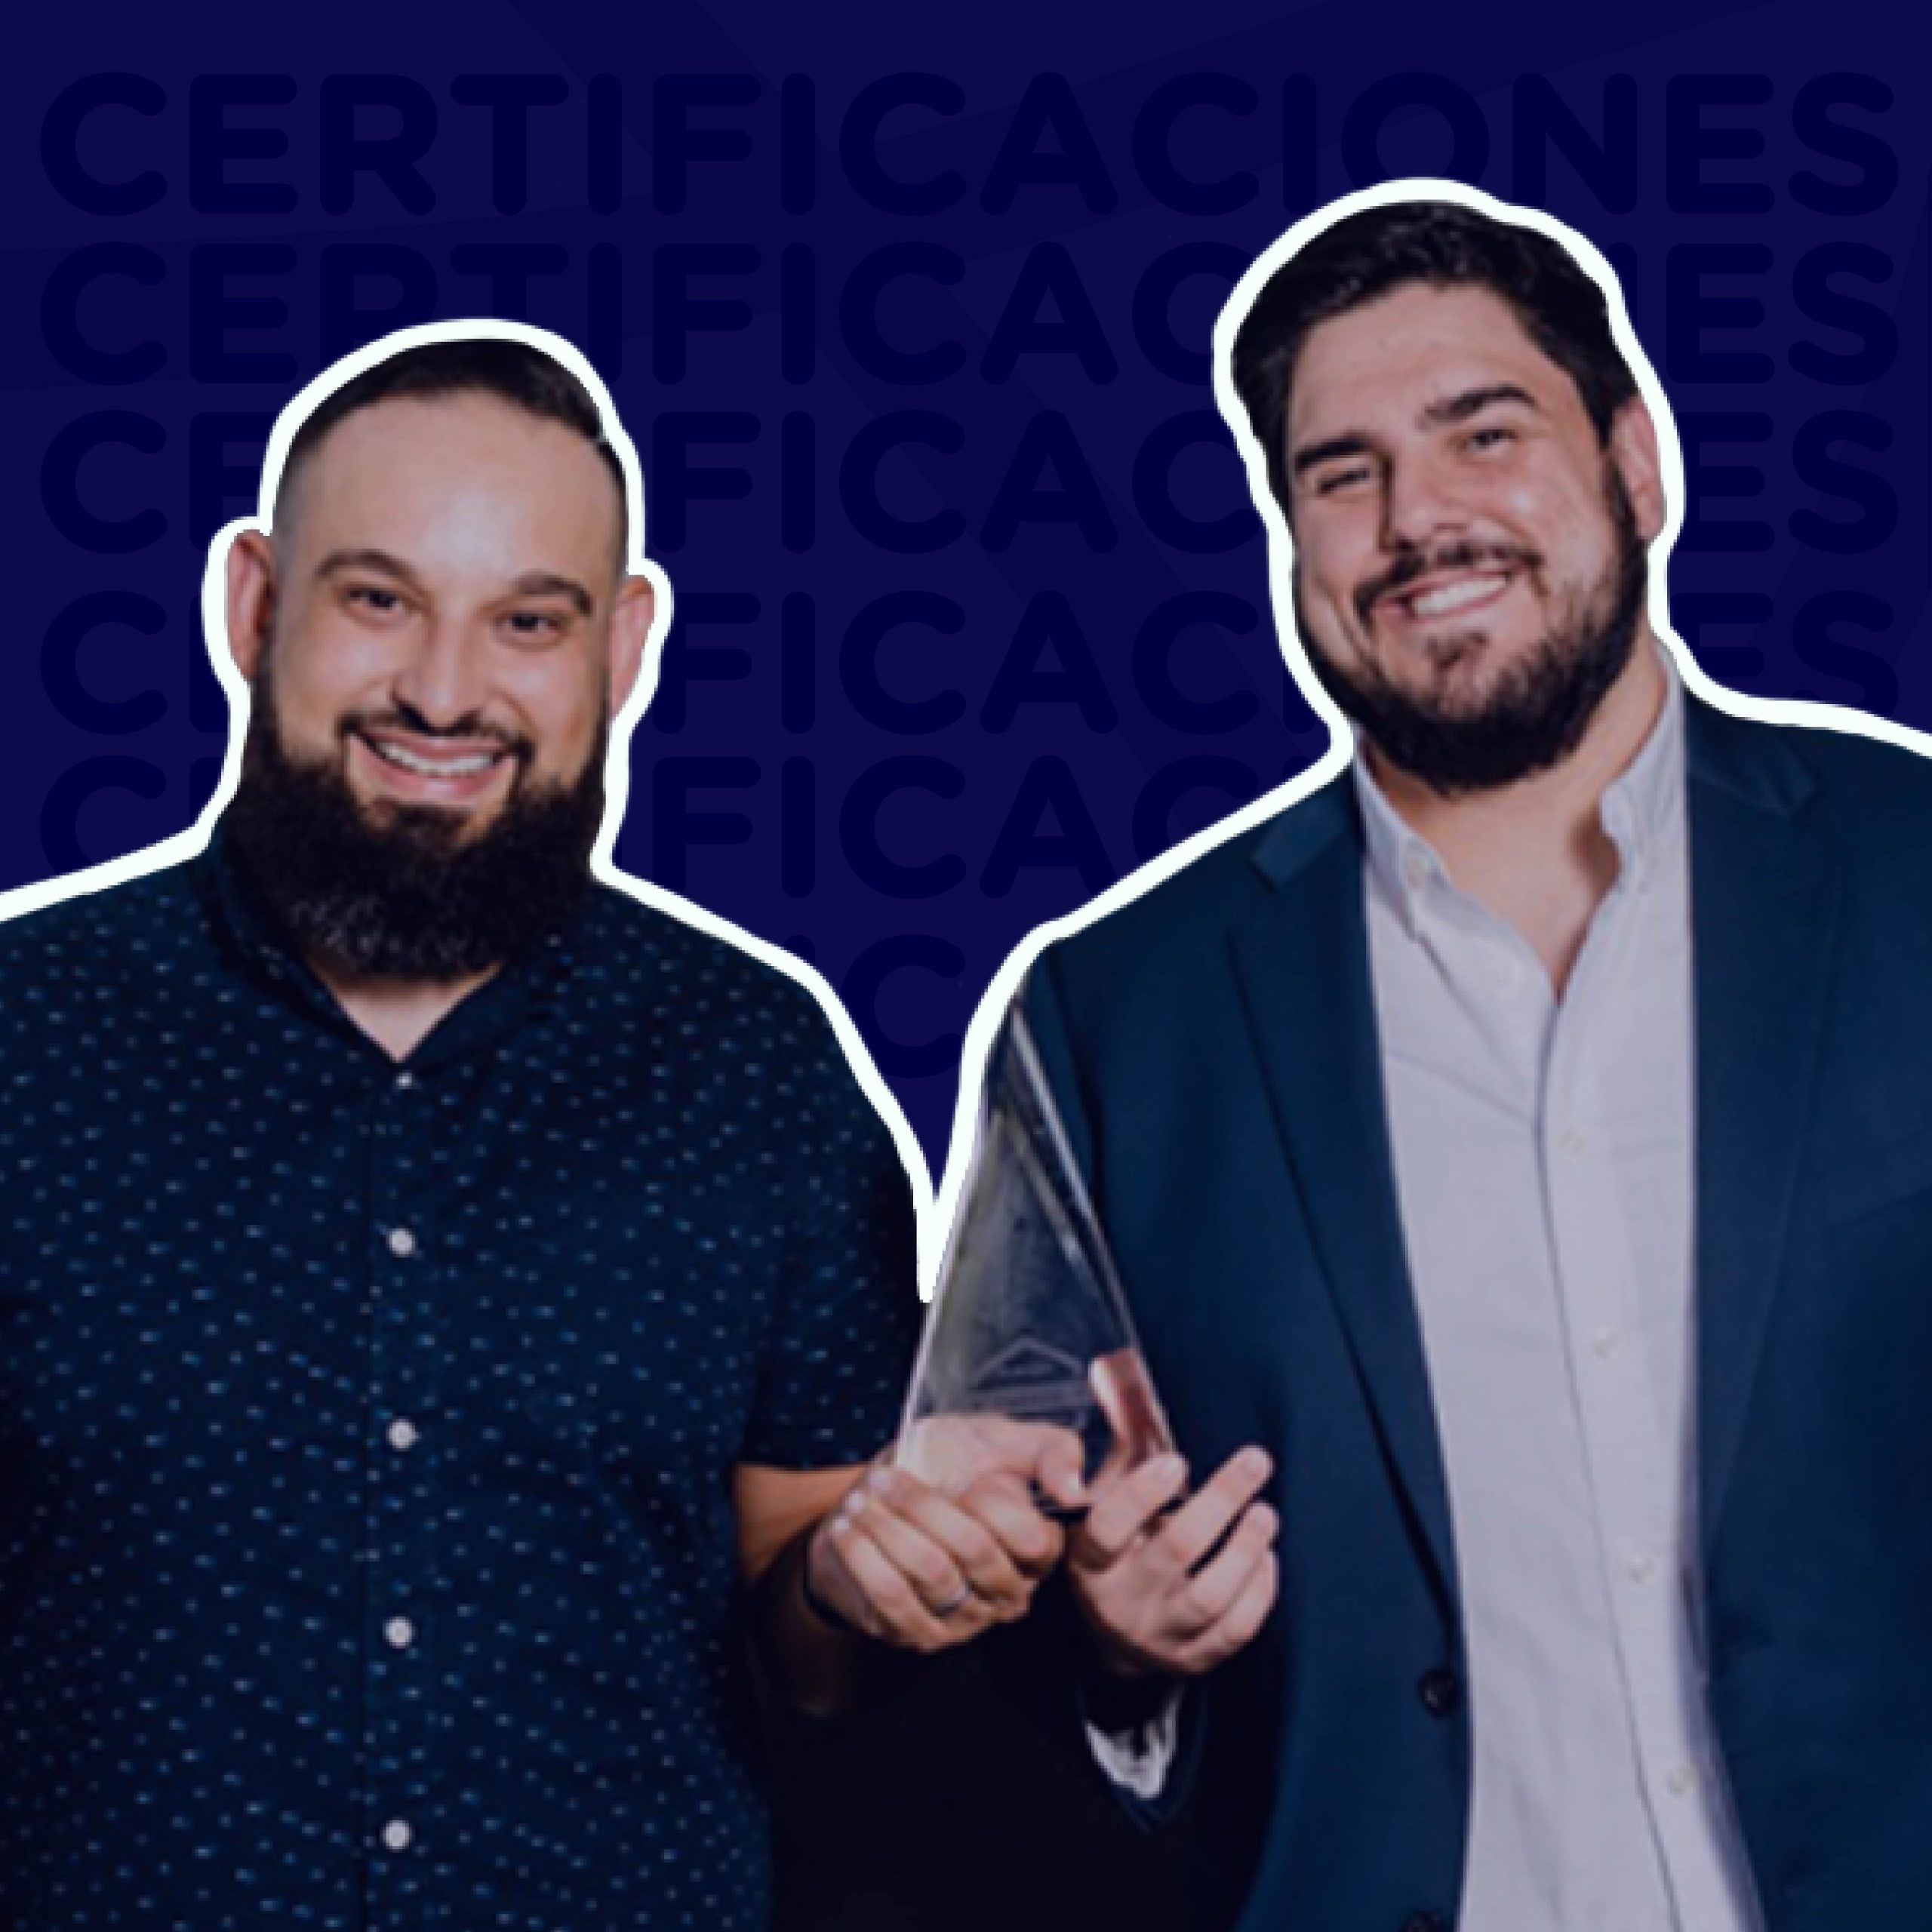 Certificaciones: Inbound Marketing y Social Media Marketing